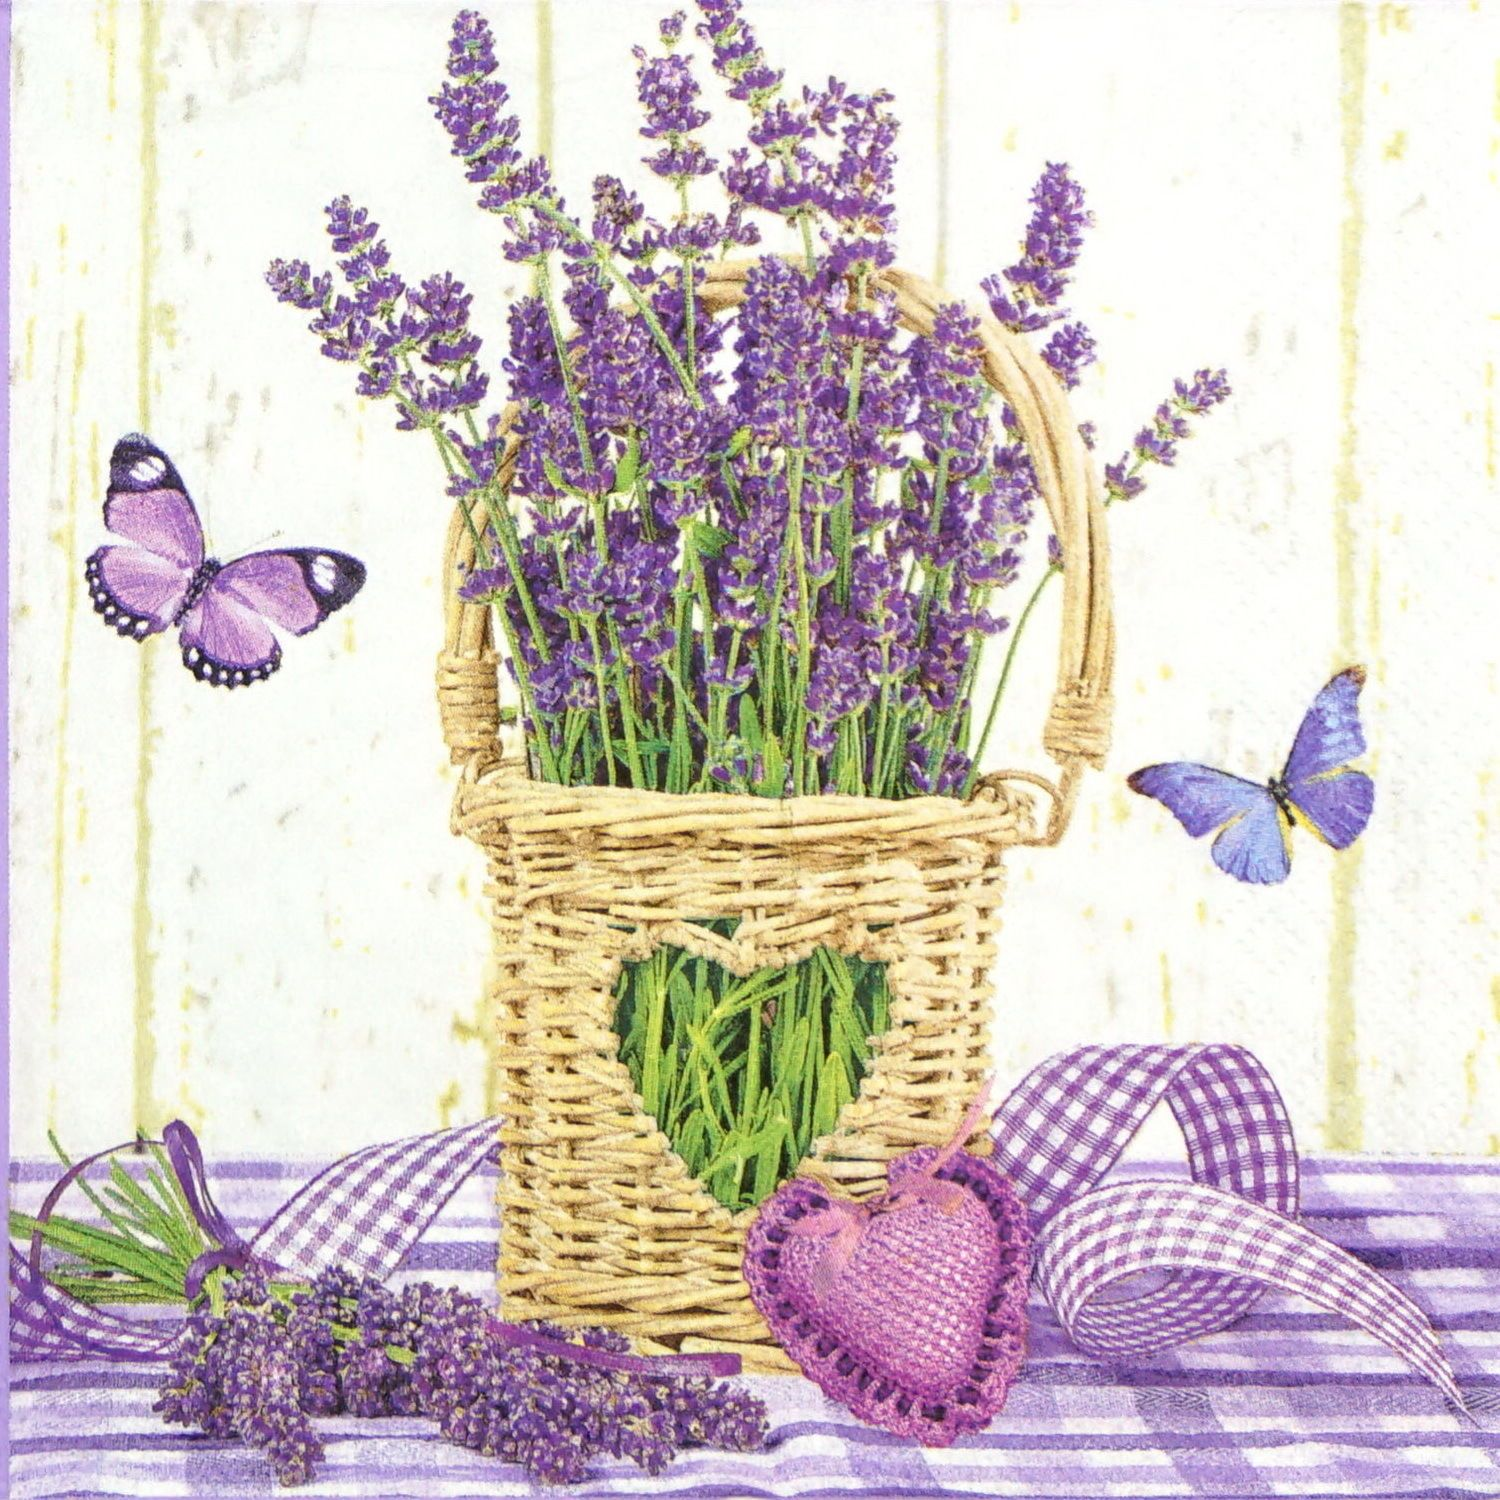 4x Paper Napkins for Decoupage Decopatch Craft Lavender Greetings